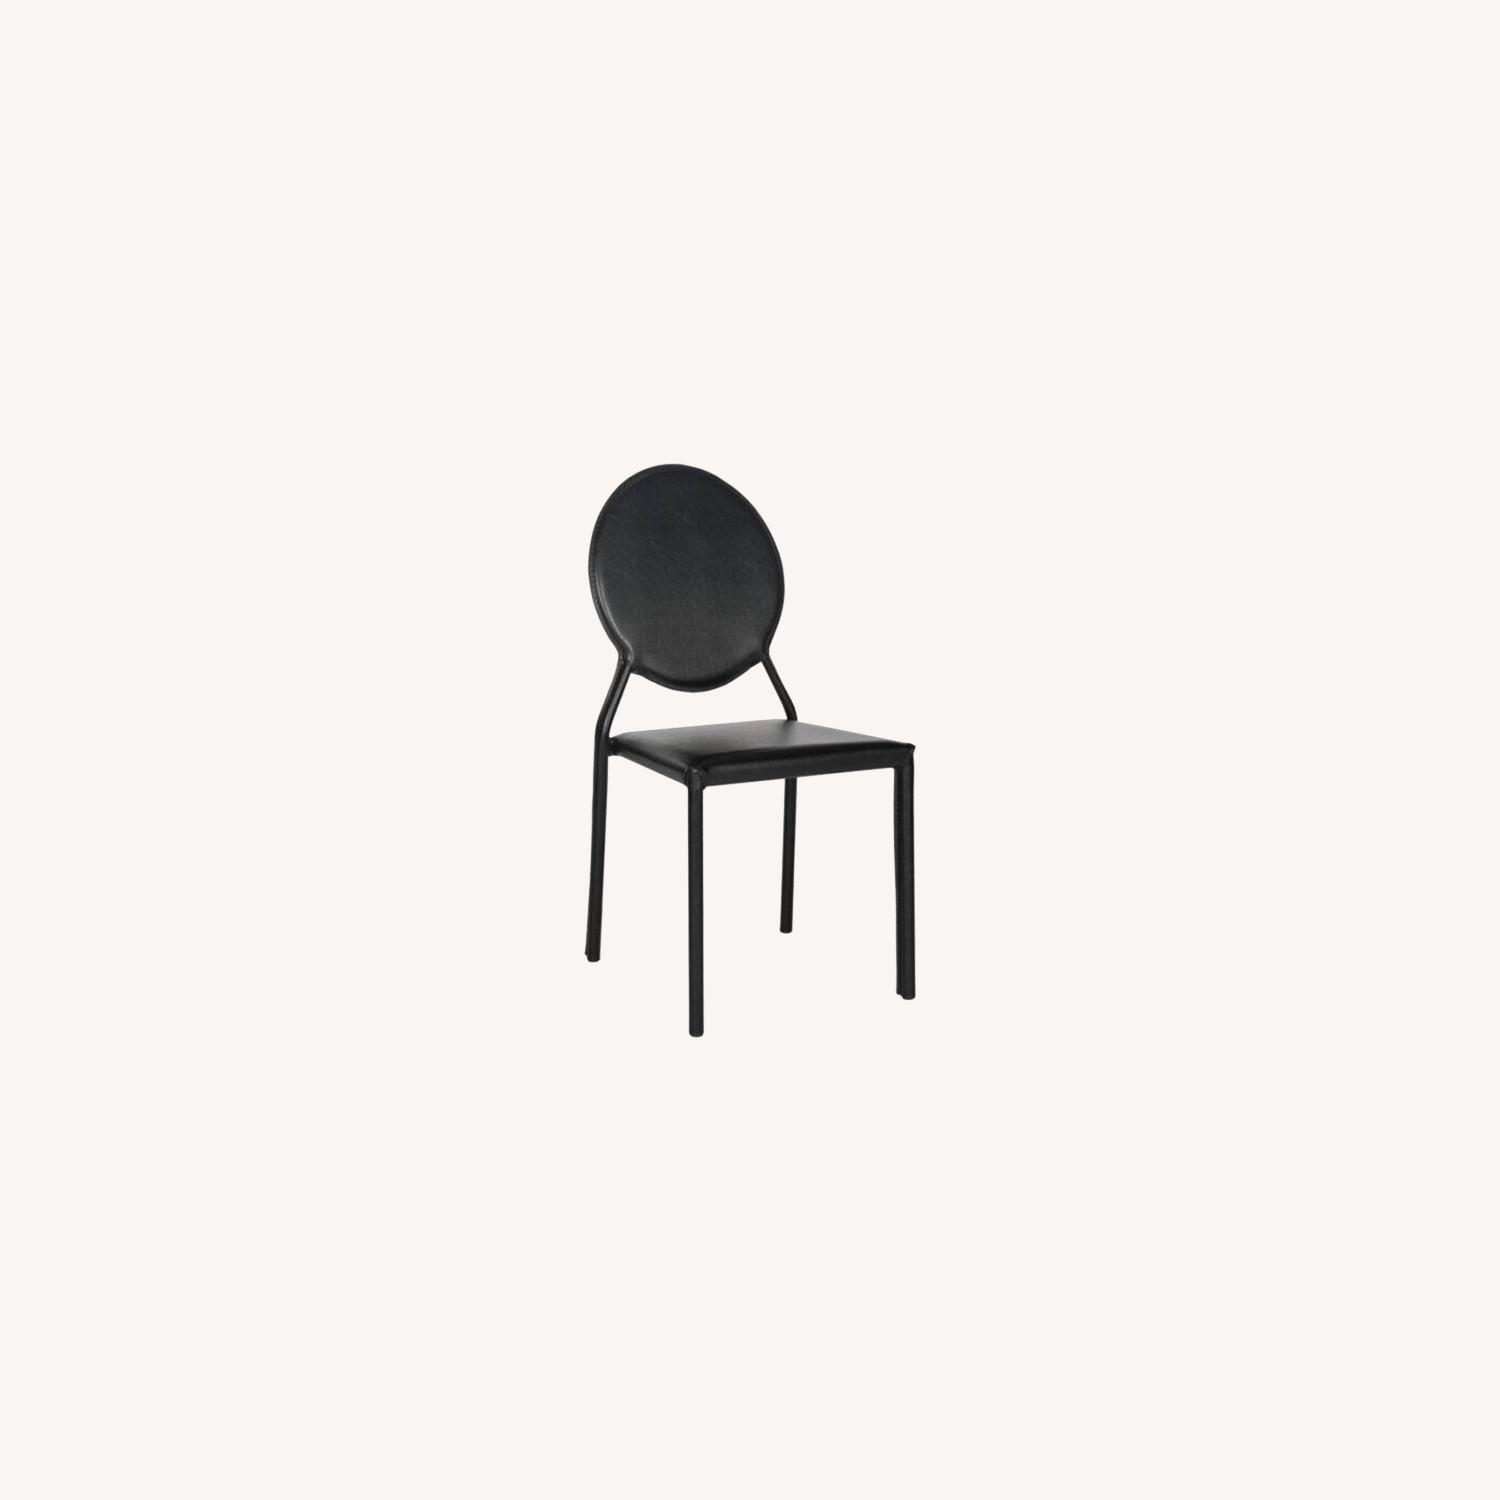 Safavieh Black Leather Dining Chairs - image-0